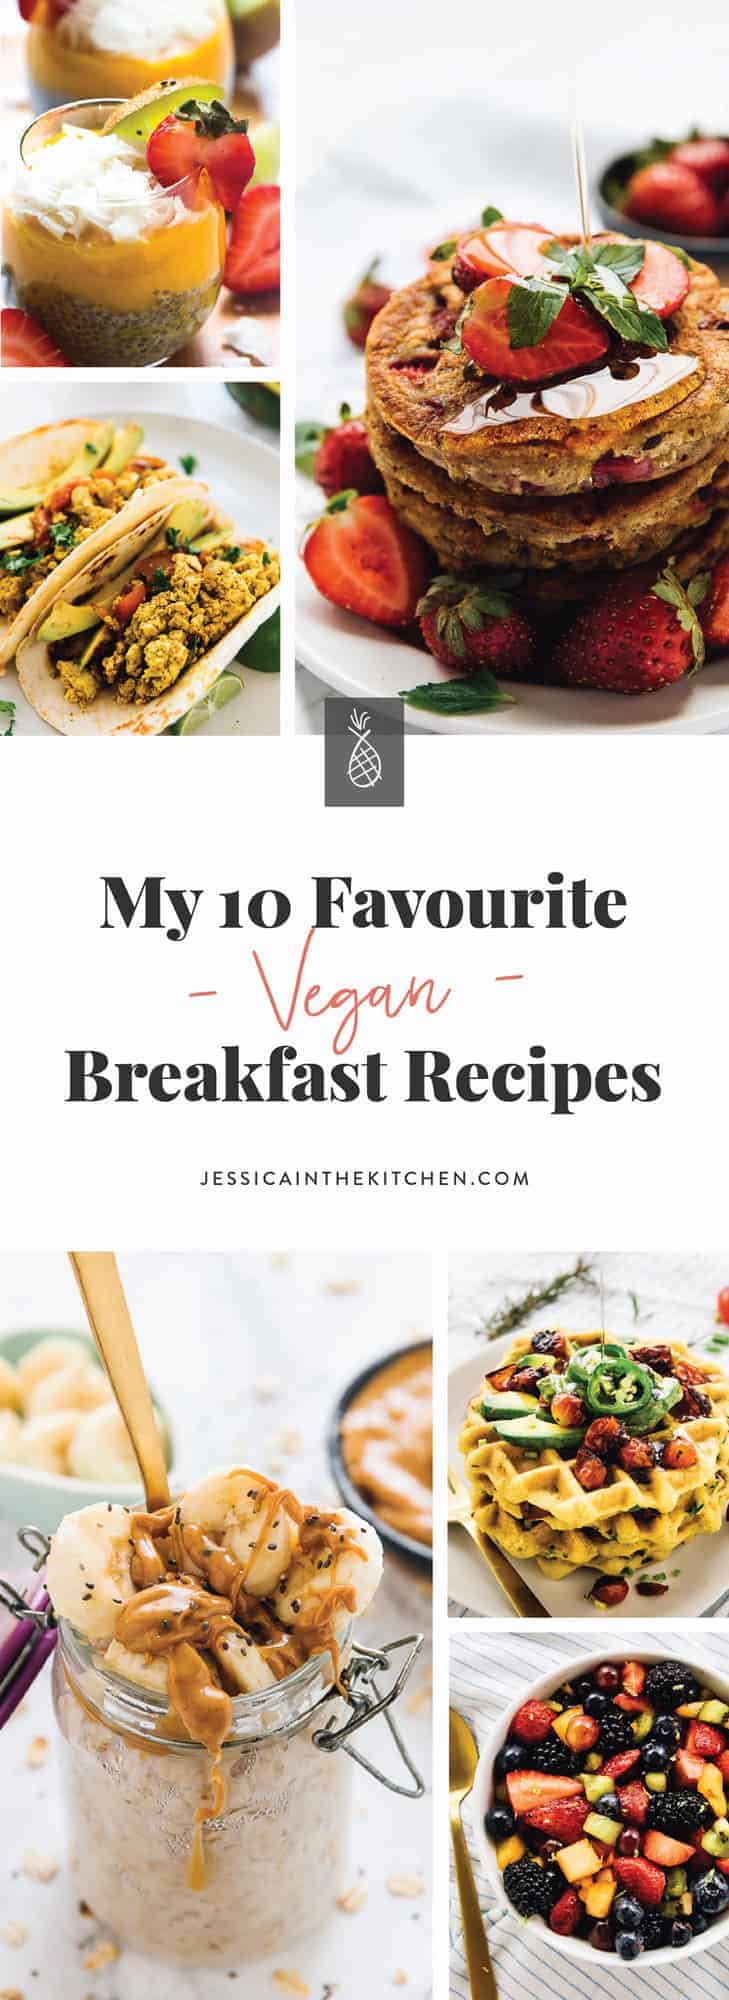 A montage of vegan breakfast recipes with text over it.